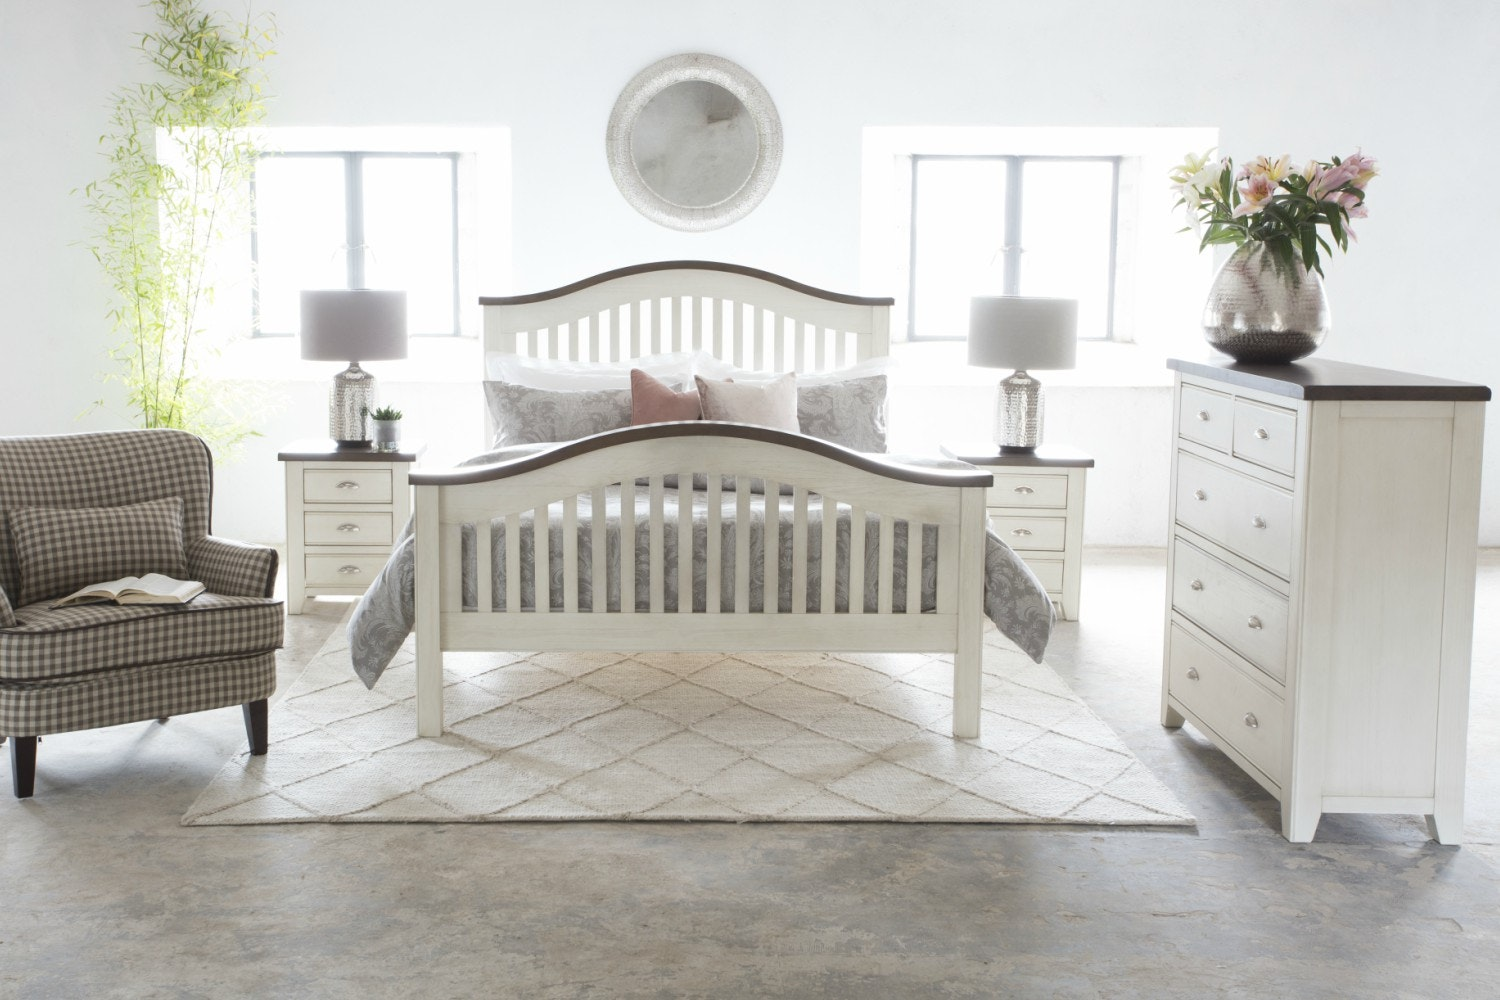 Wellington Bedside|Cream| 3 Drawers